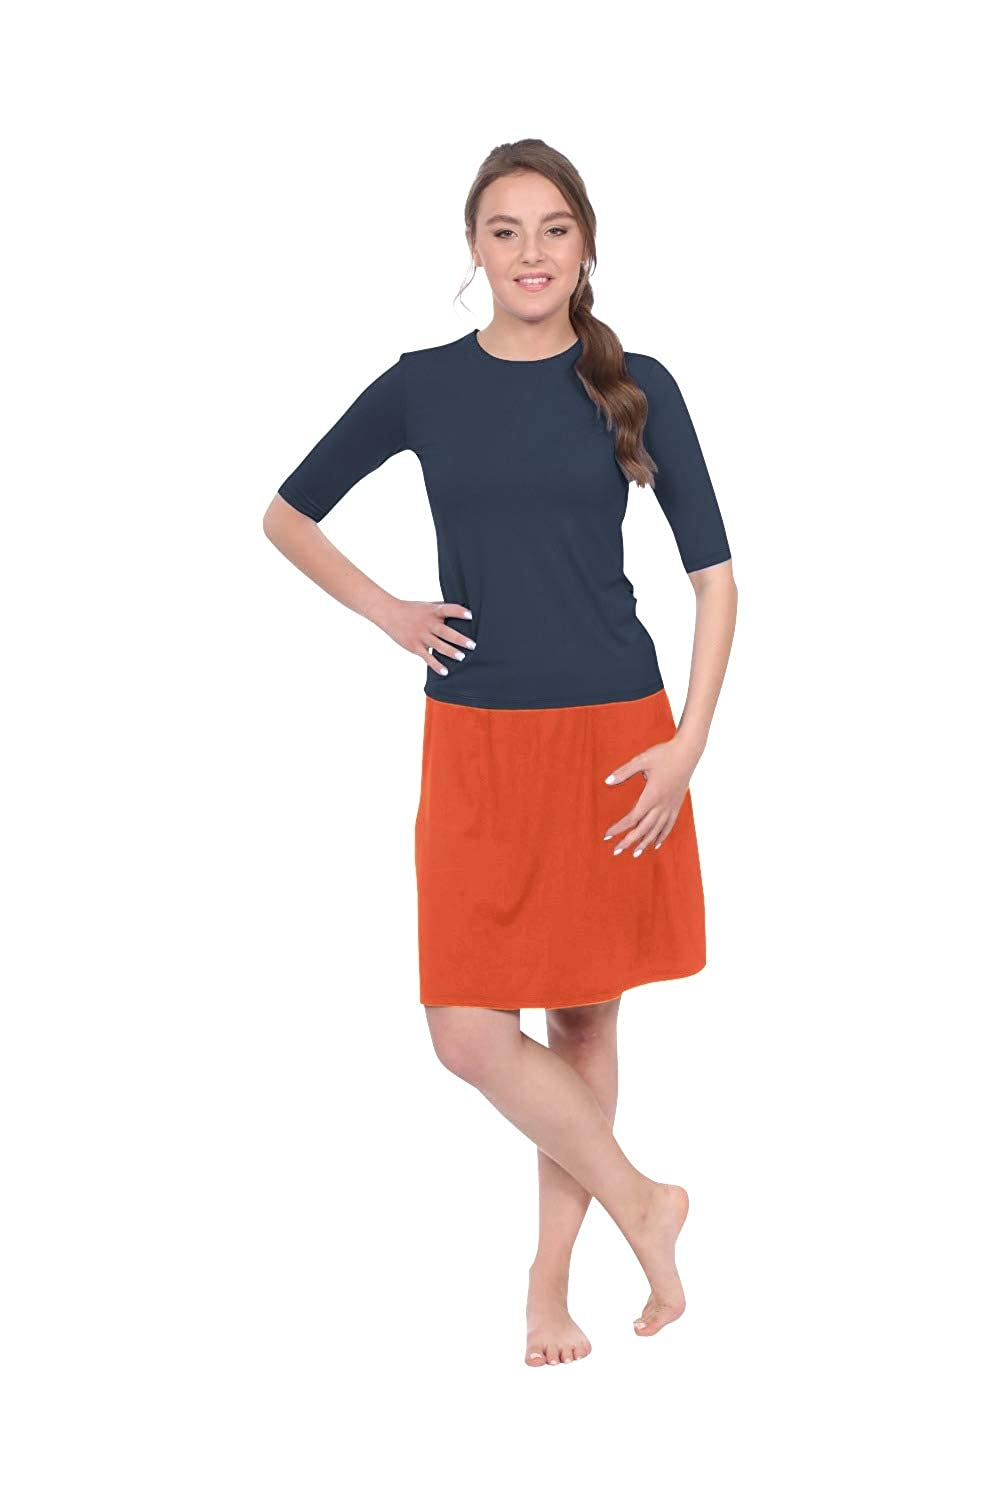 Flame orange Kosher Casual Women's to The Knee Length Running Skirt with Built in Shorts